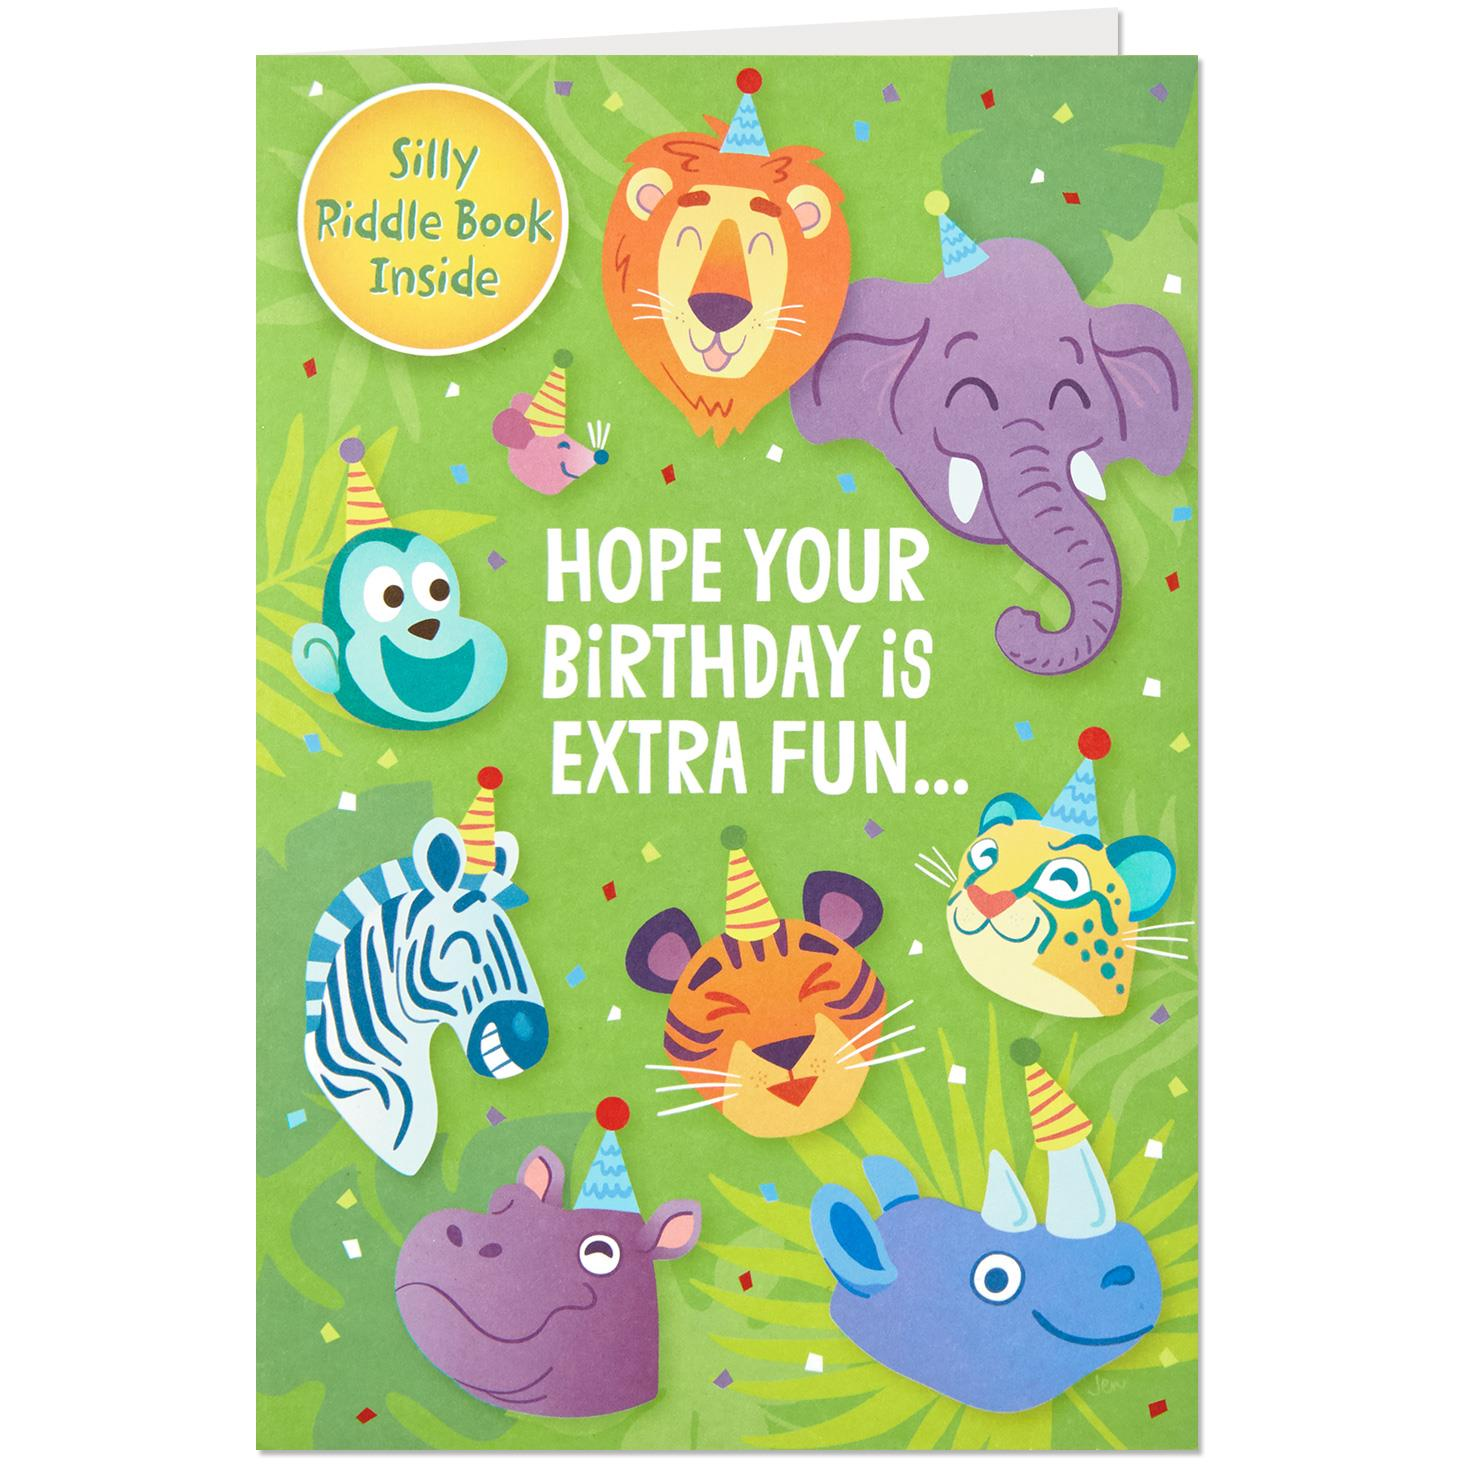 Extra Funny Birthday Card With Riddle Book